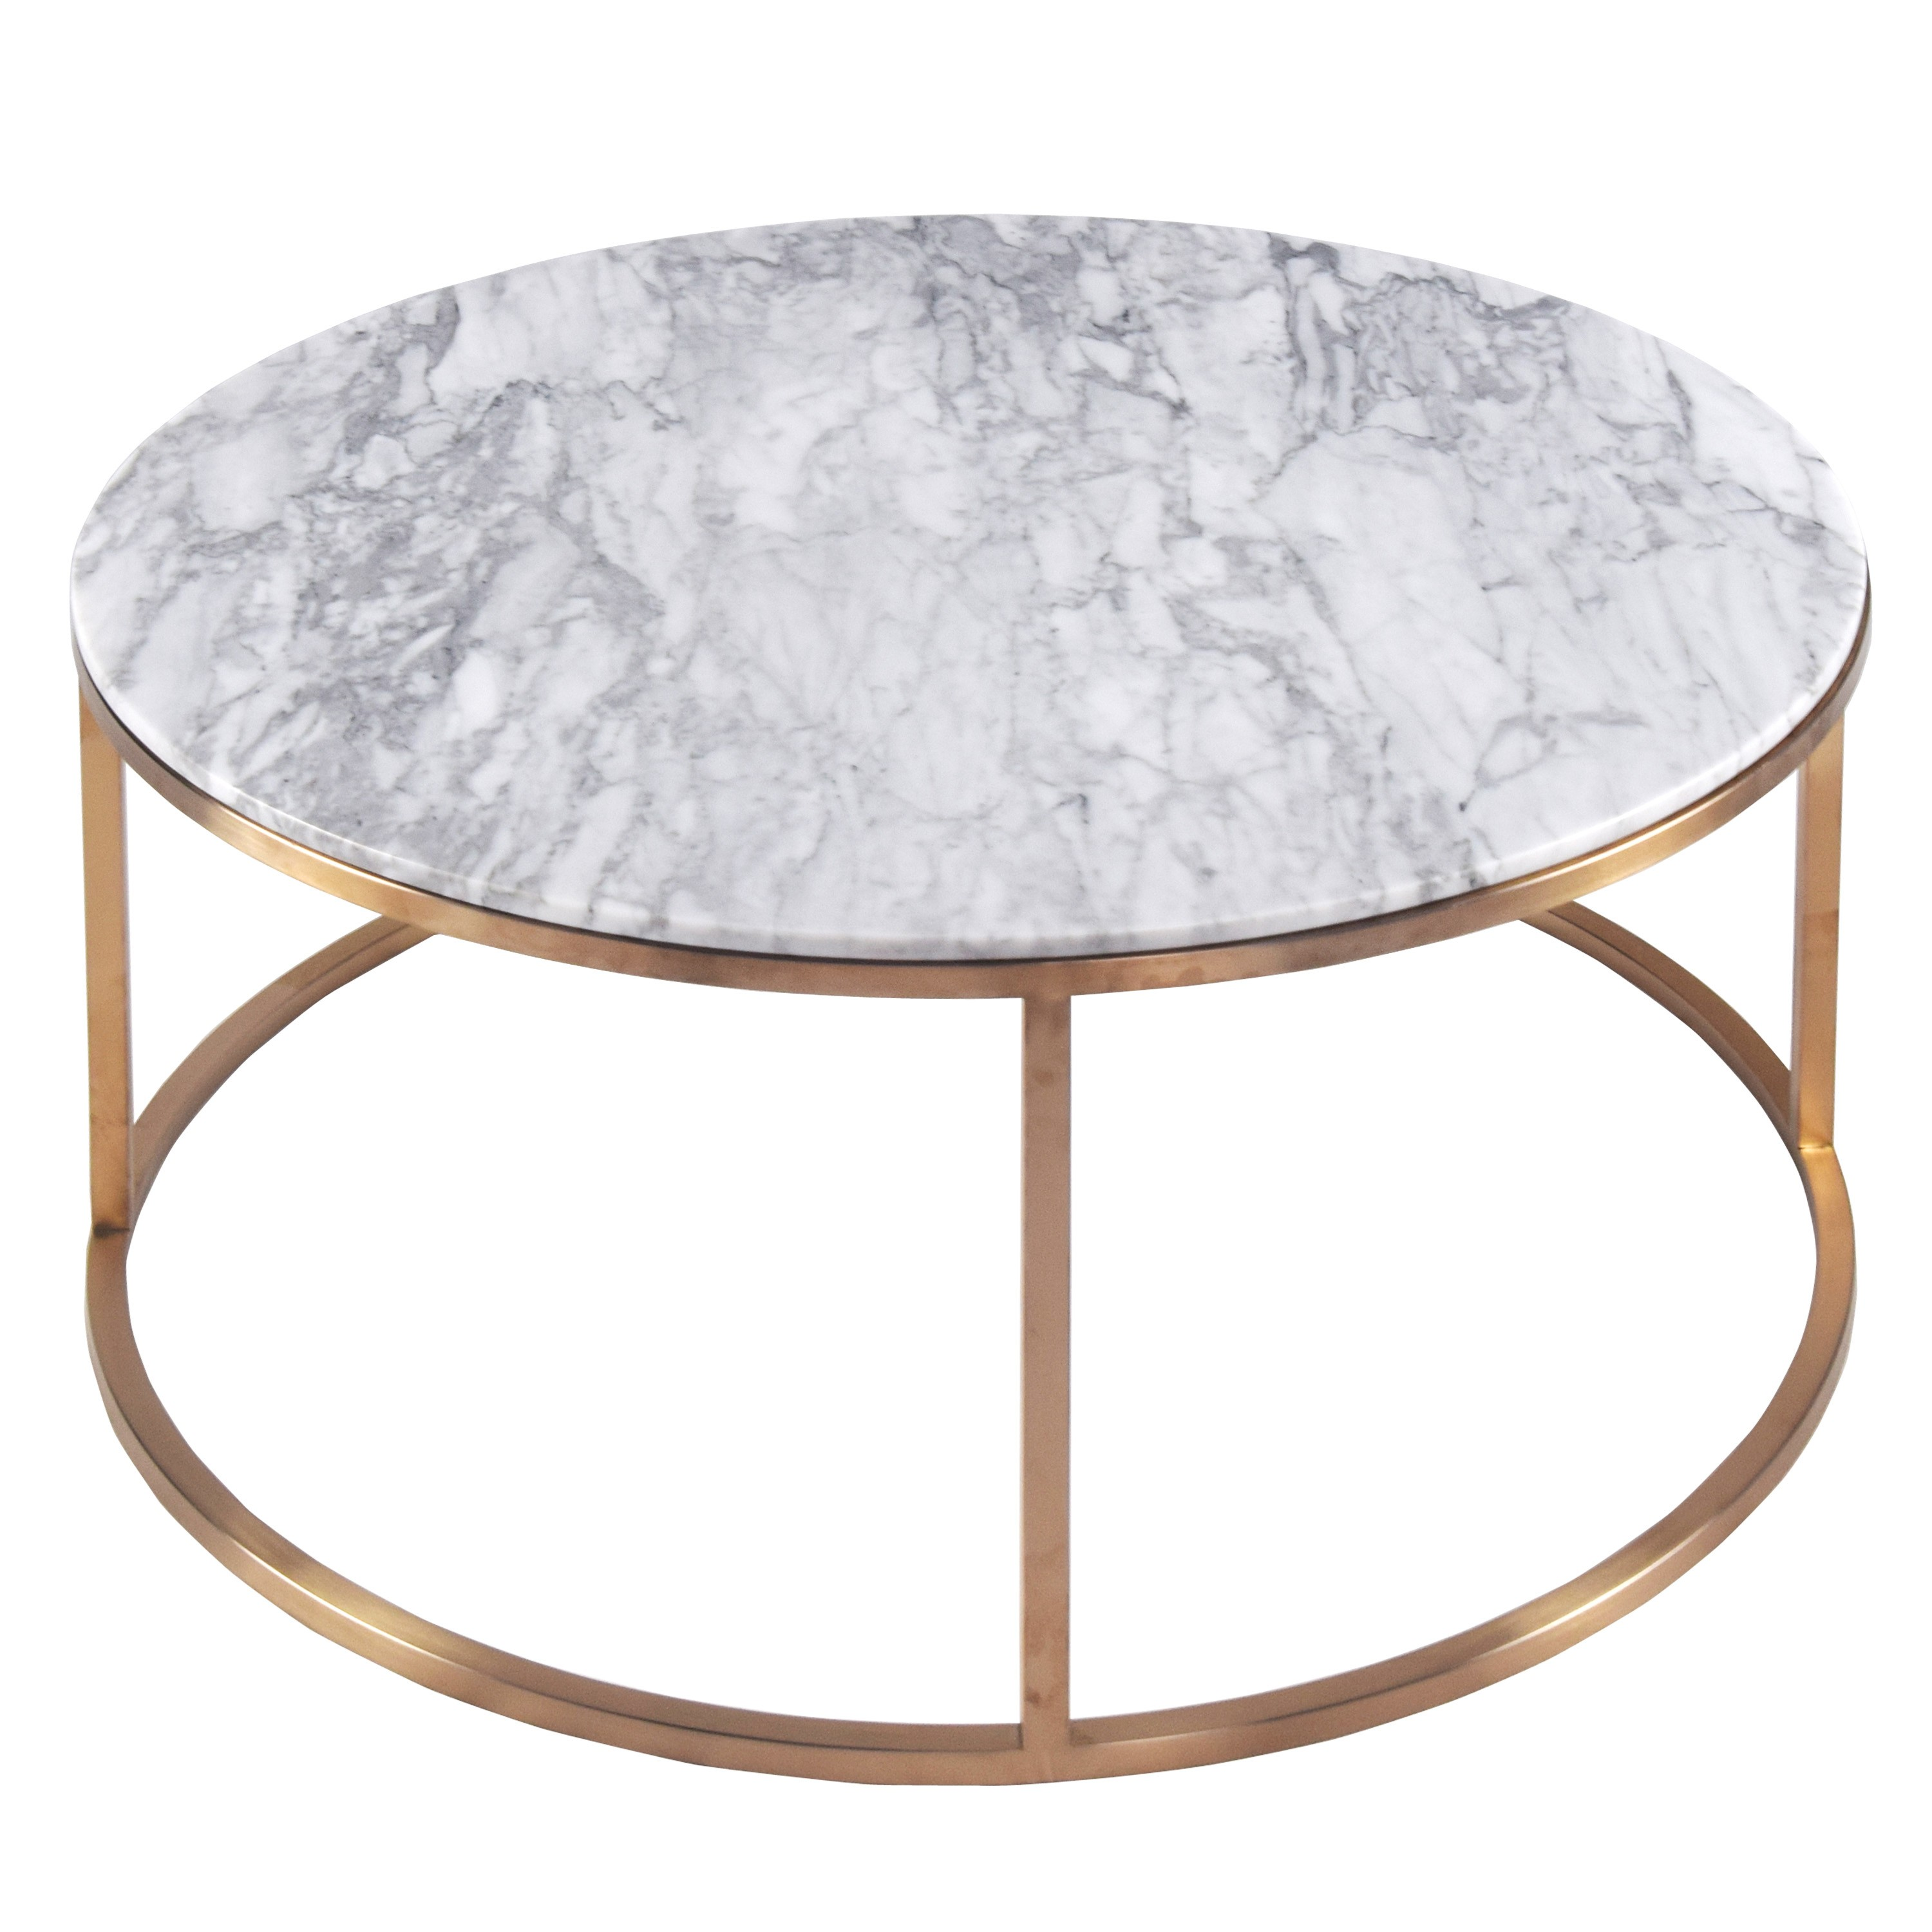 Coffee tables with marble tops choice image coffee table design ideas Coffee tables with marble tops